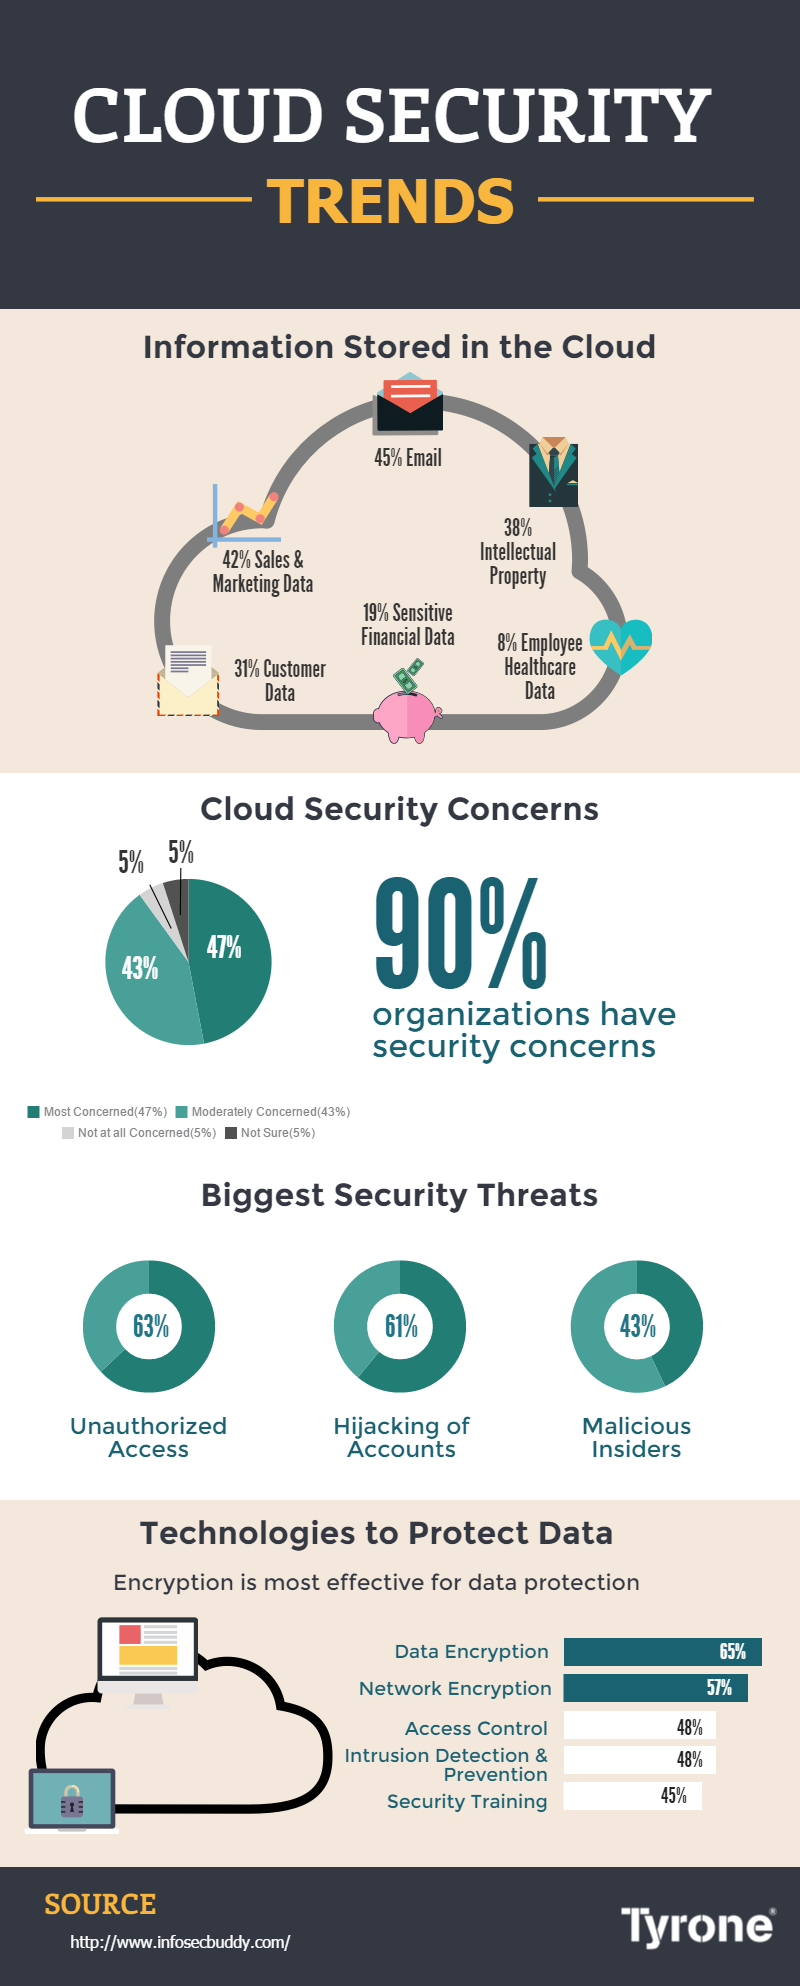 Security and the Cloud: Trends in Enterprise Cloud Computing